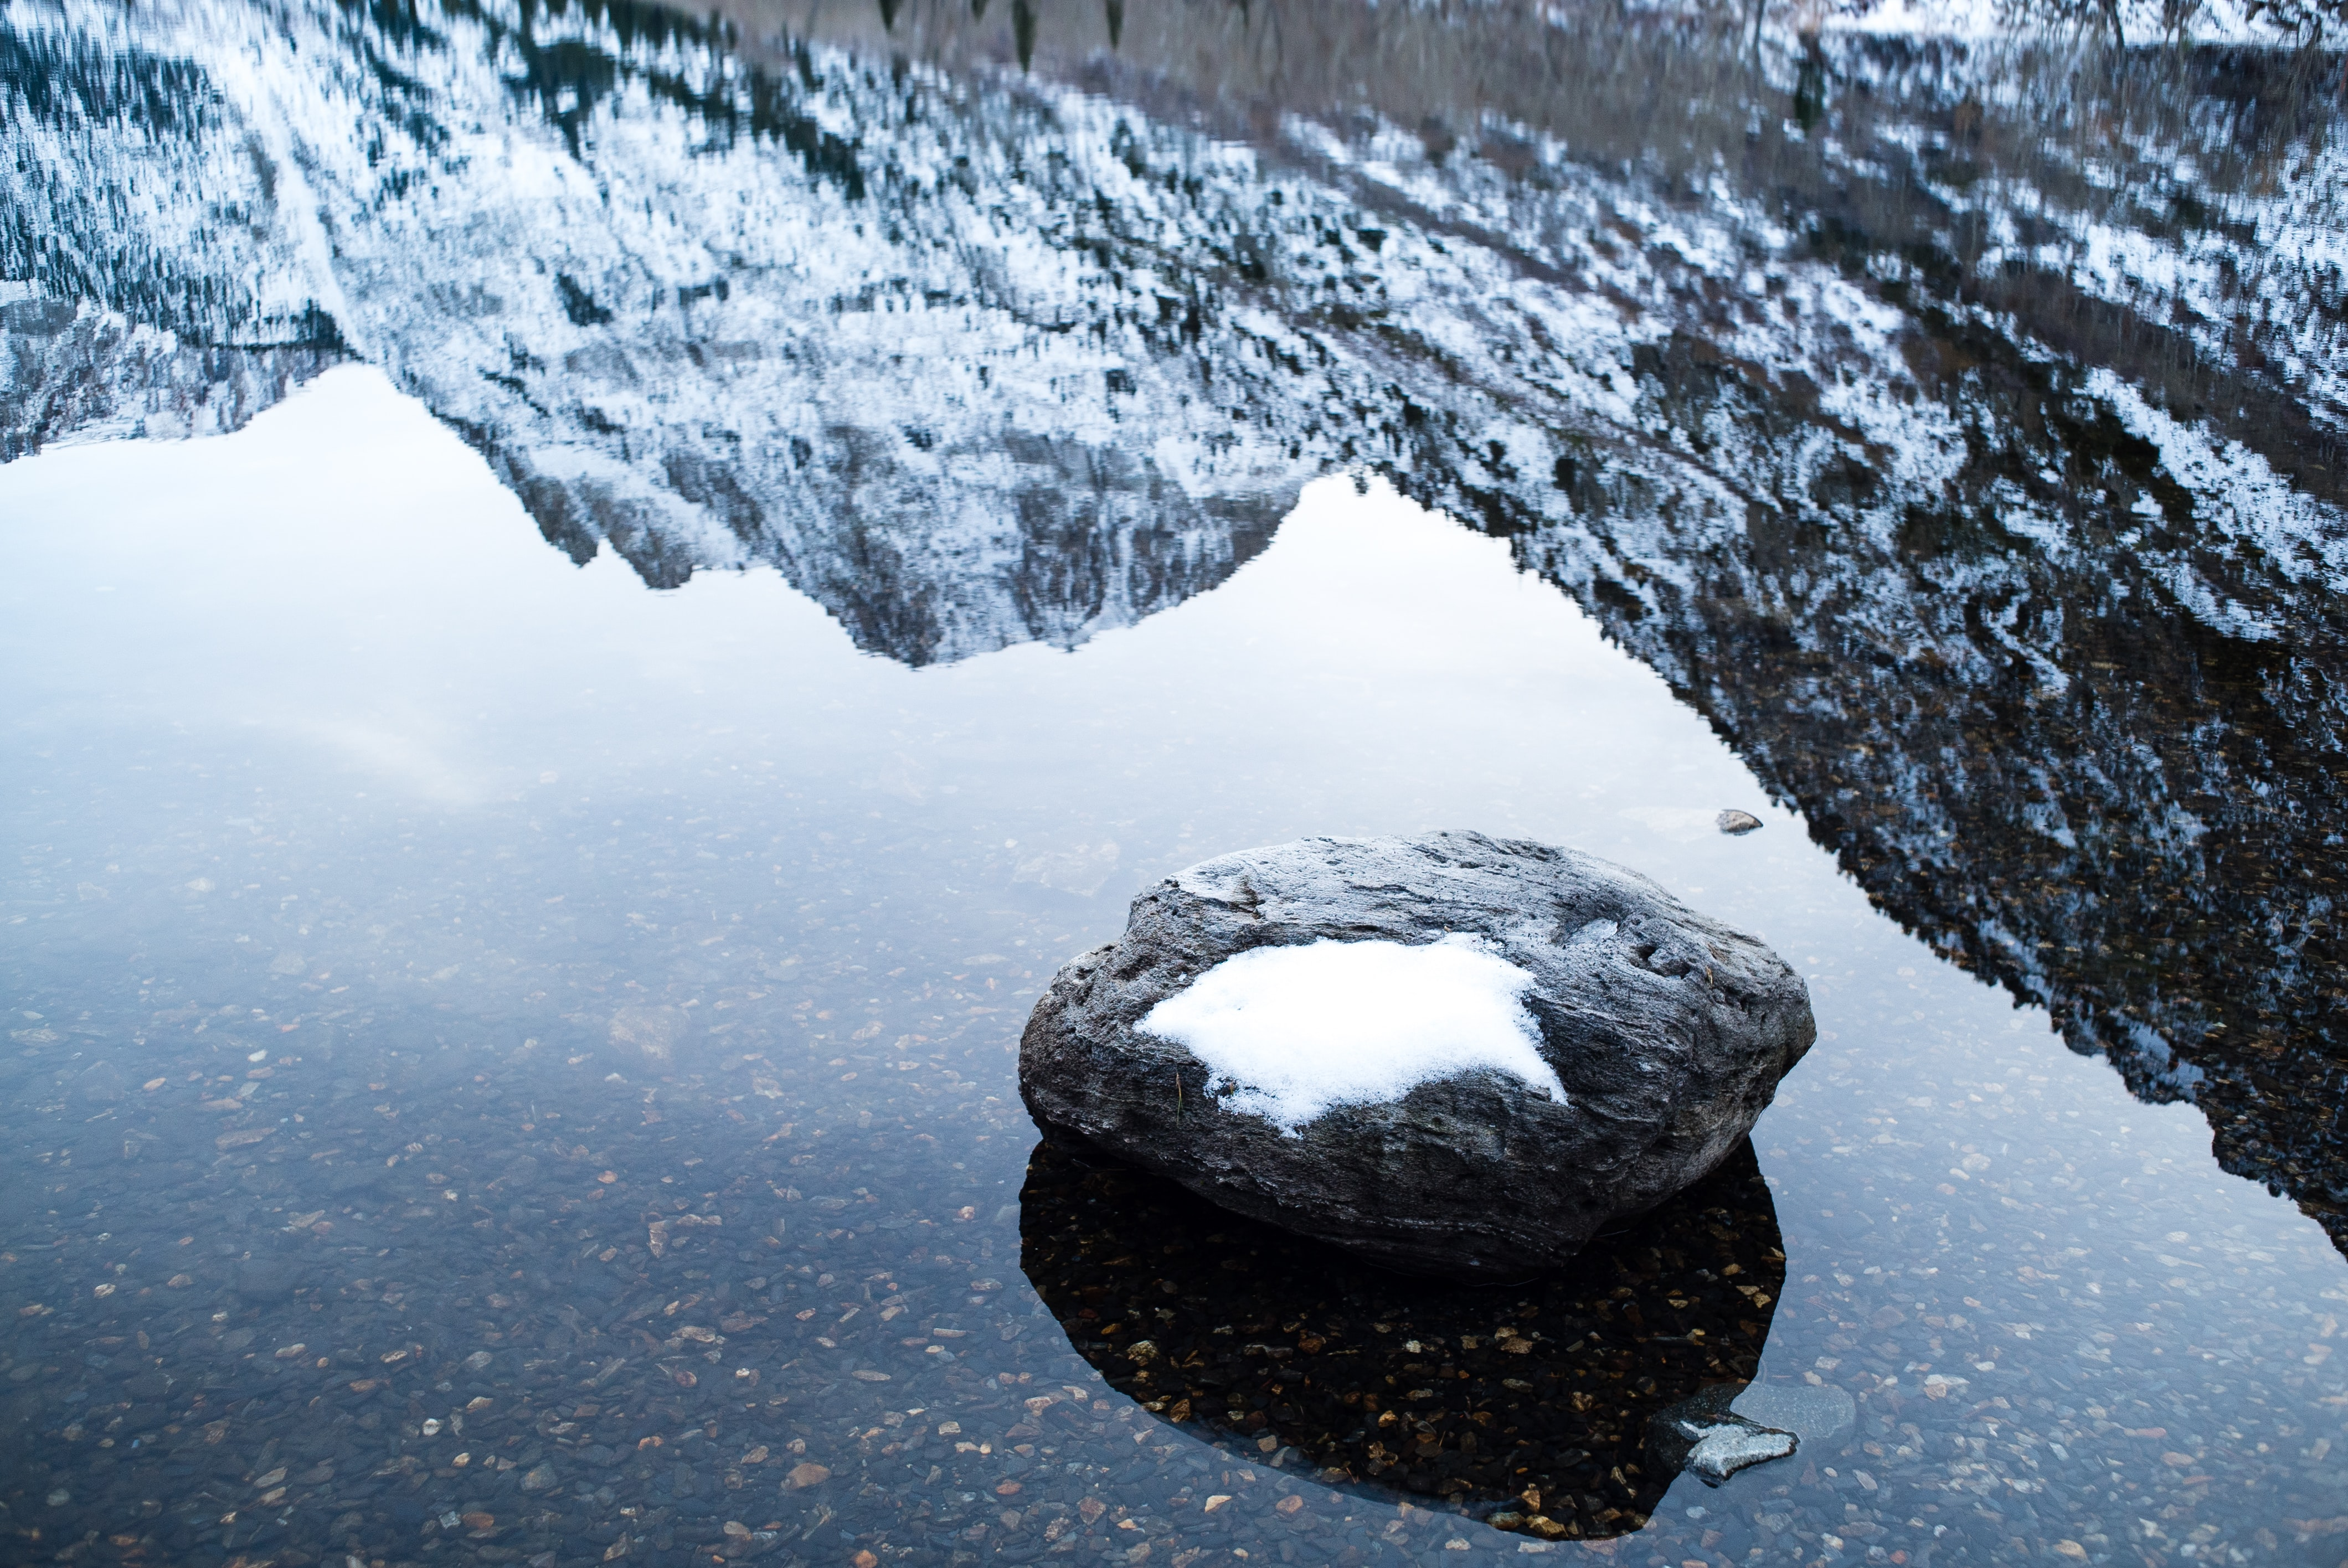 shallow focus photography of rock fragment on body of water